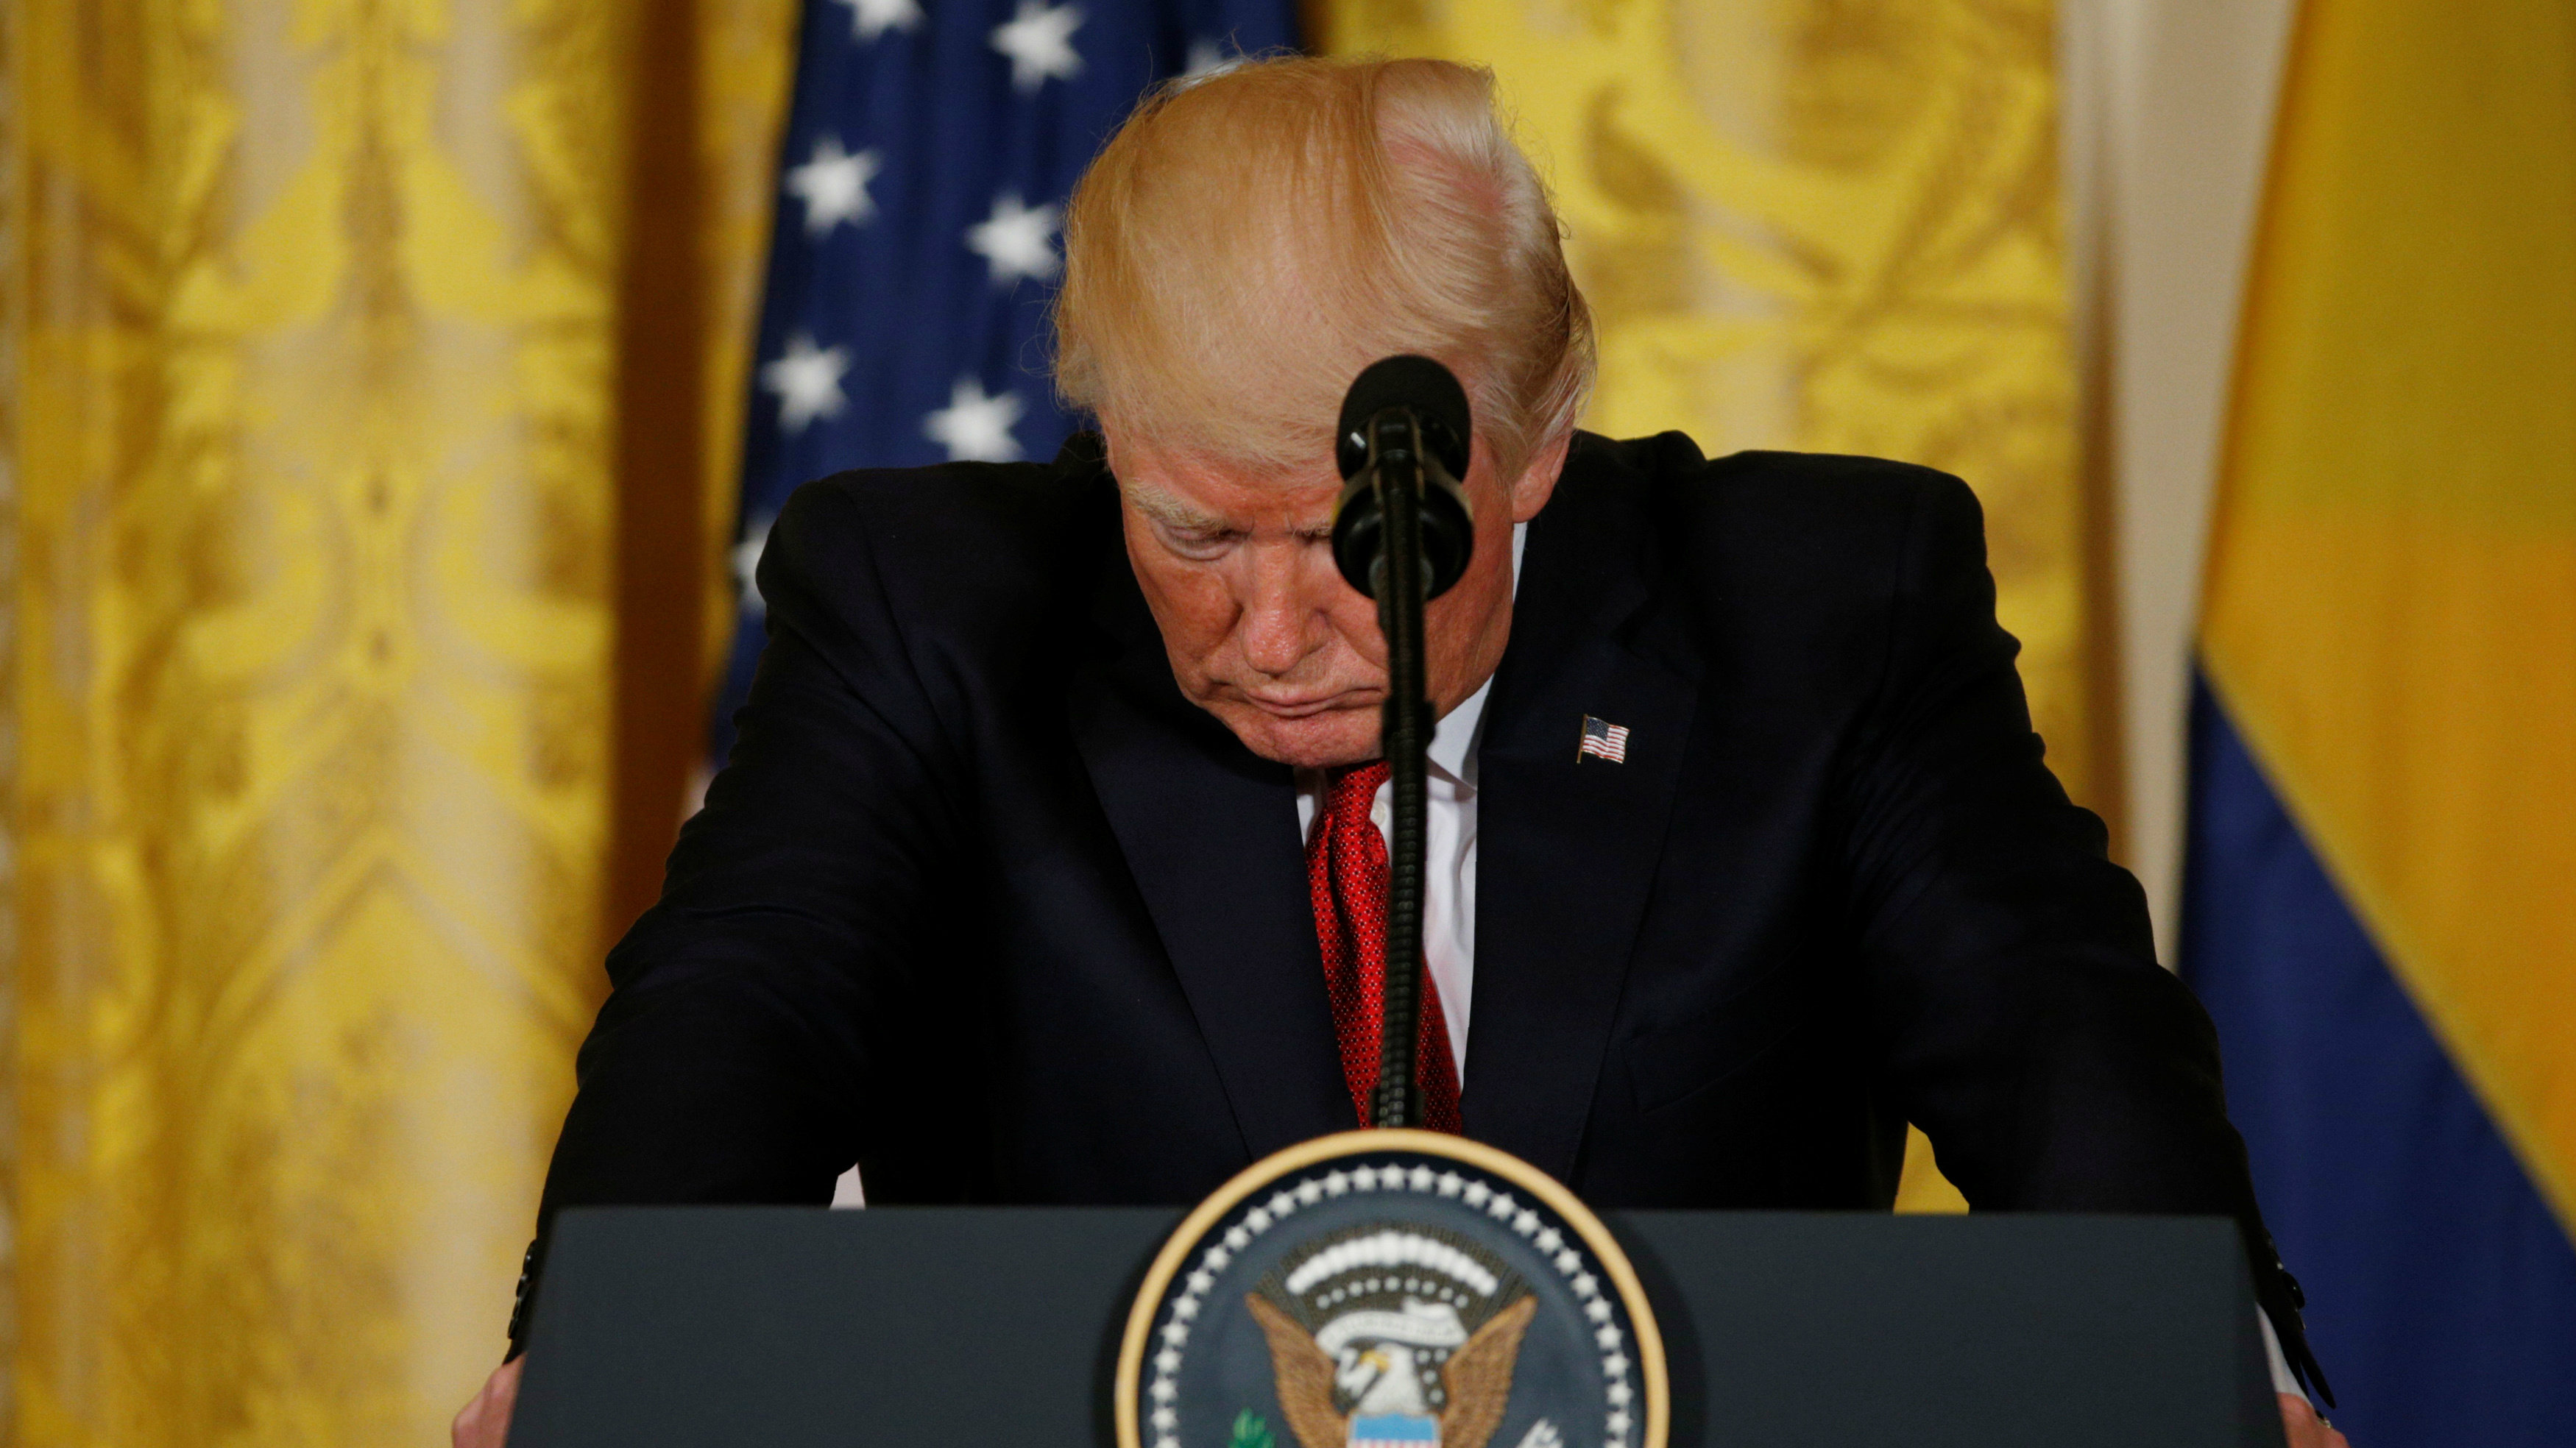 US President Donald Trump at a press conference at the White House